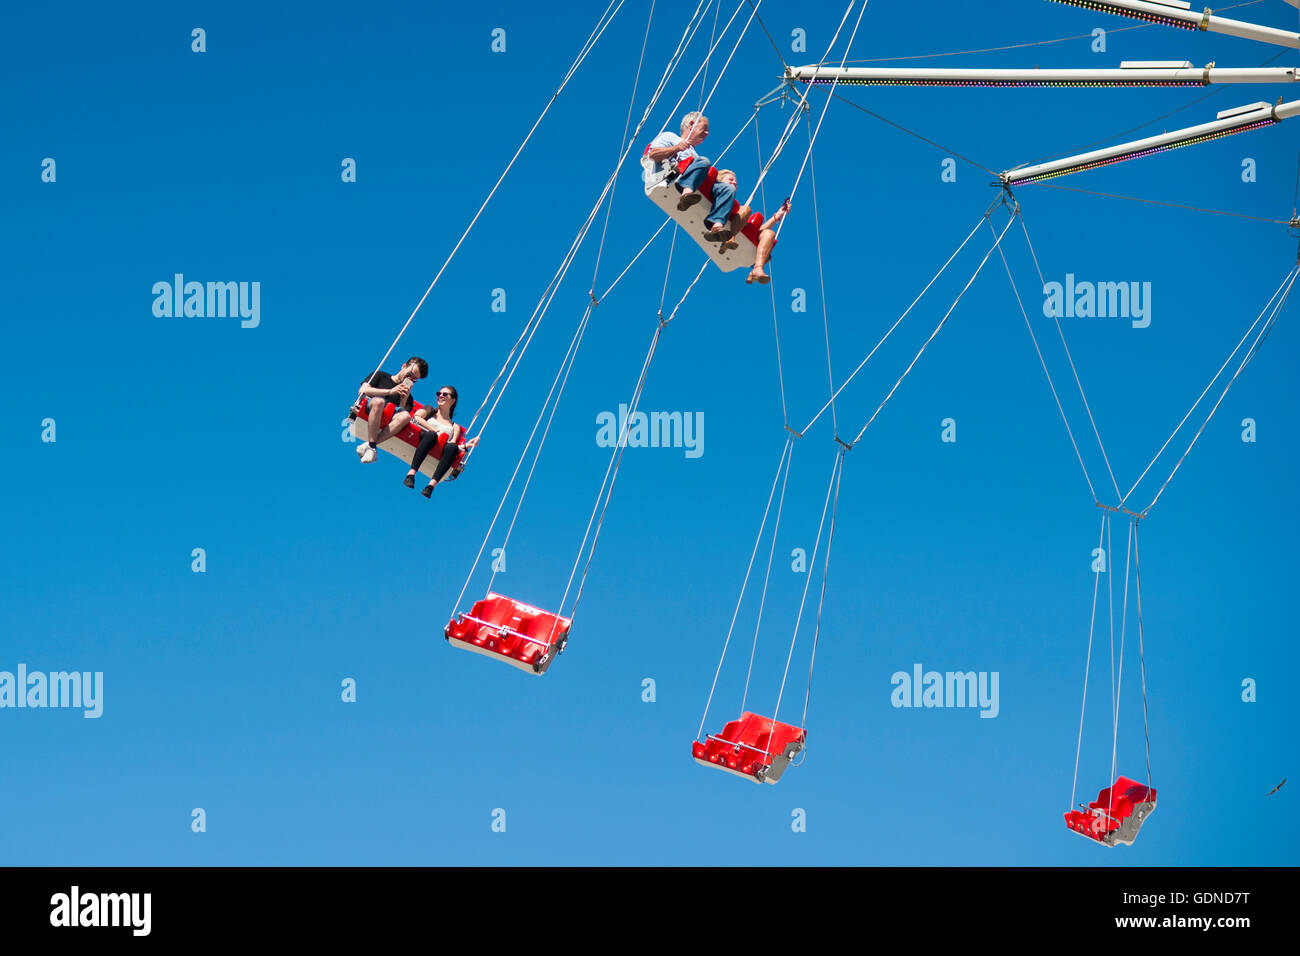 People on fairground ride swings high up in the air with a blue sky background - Stock Image